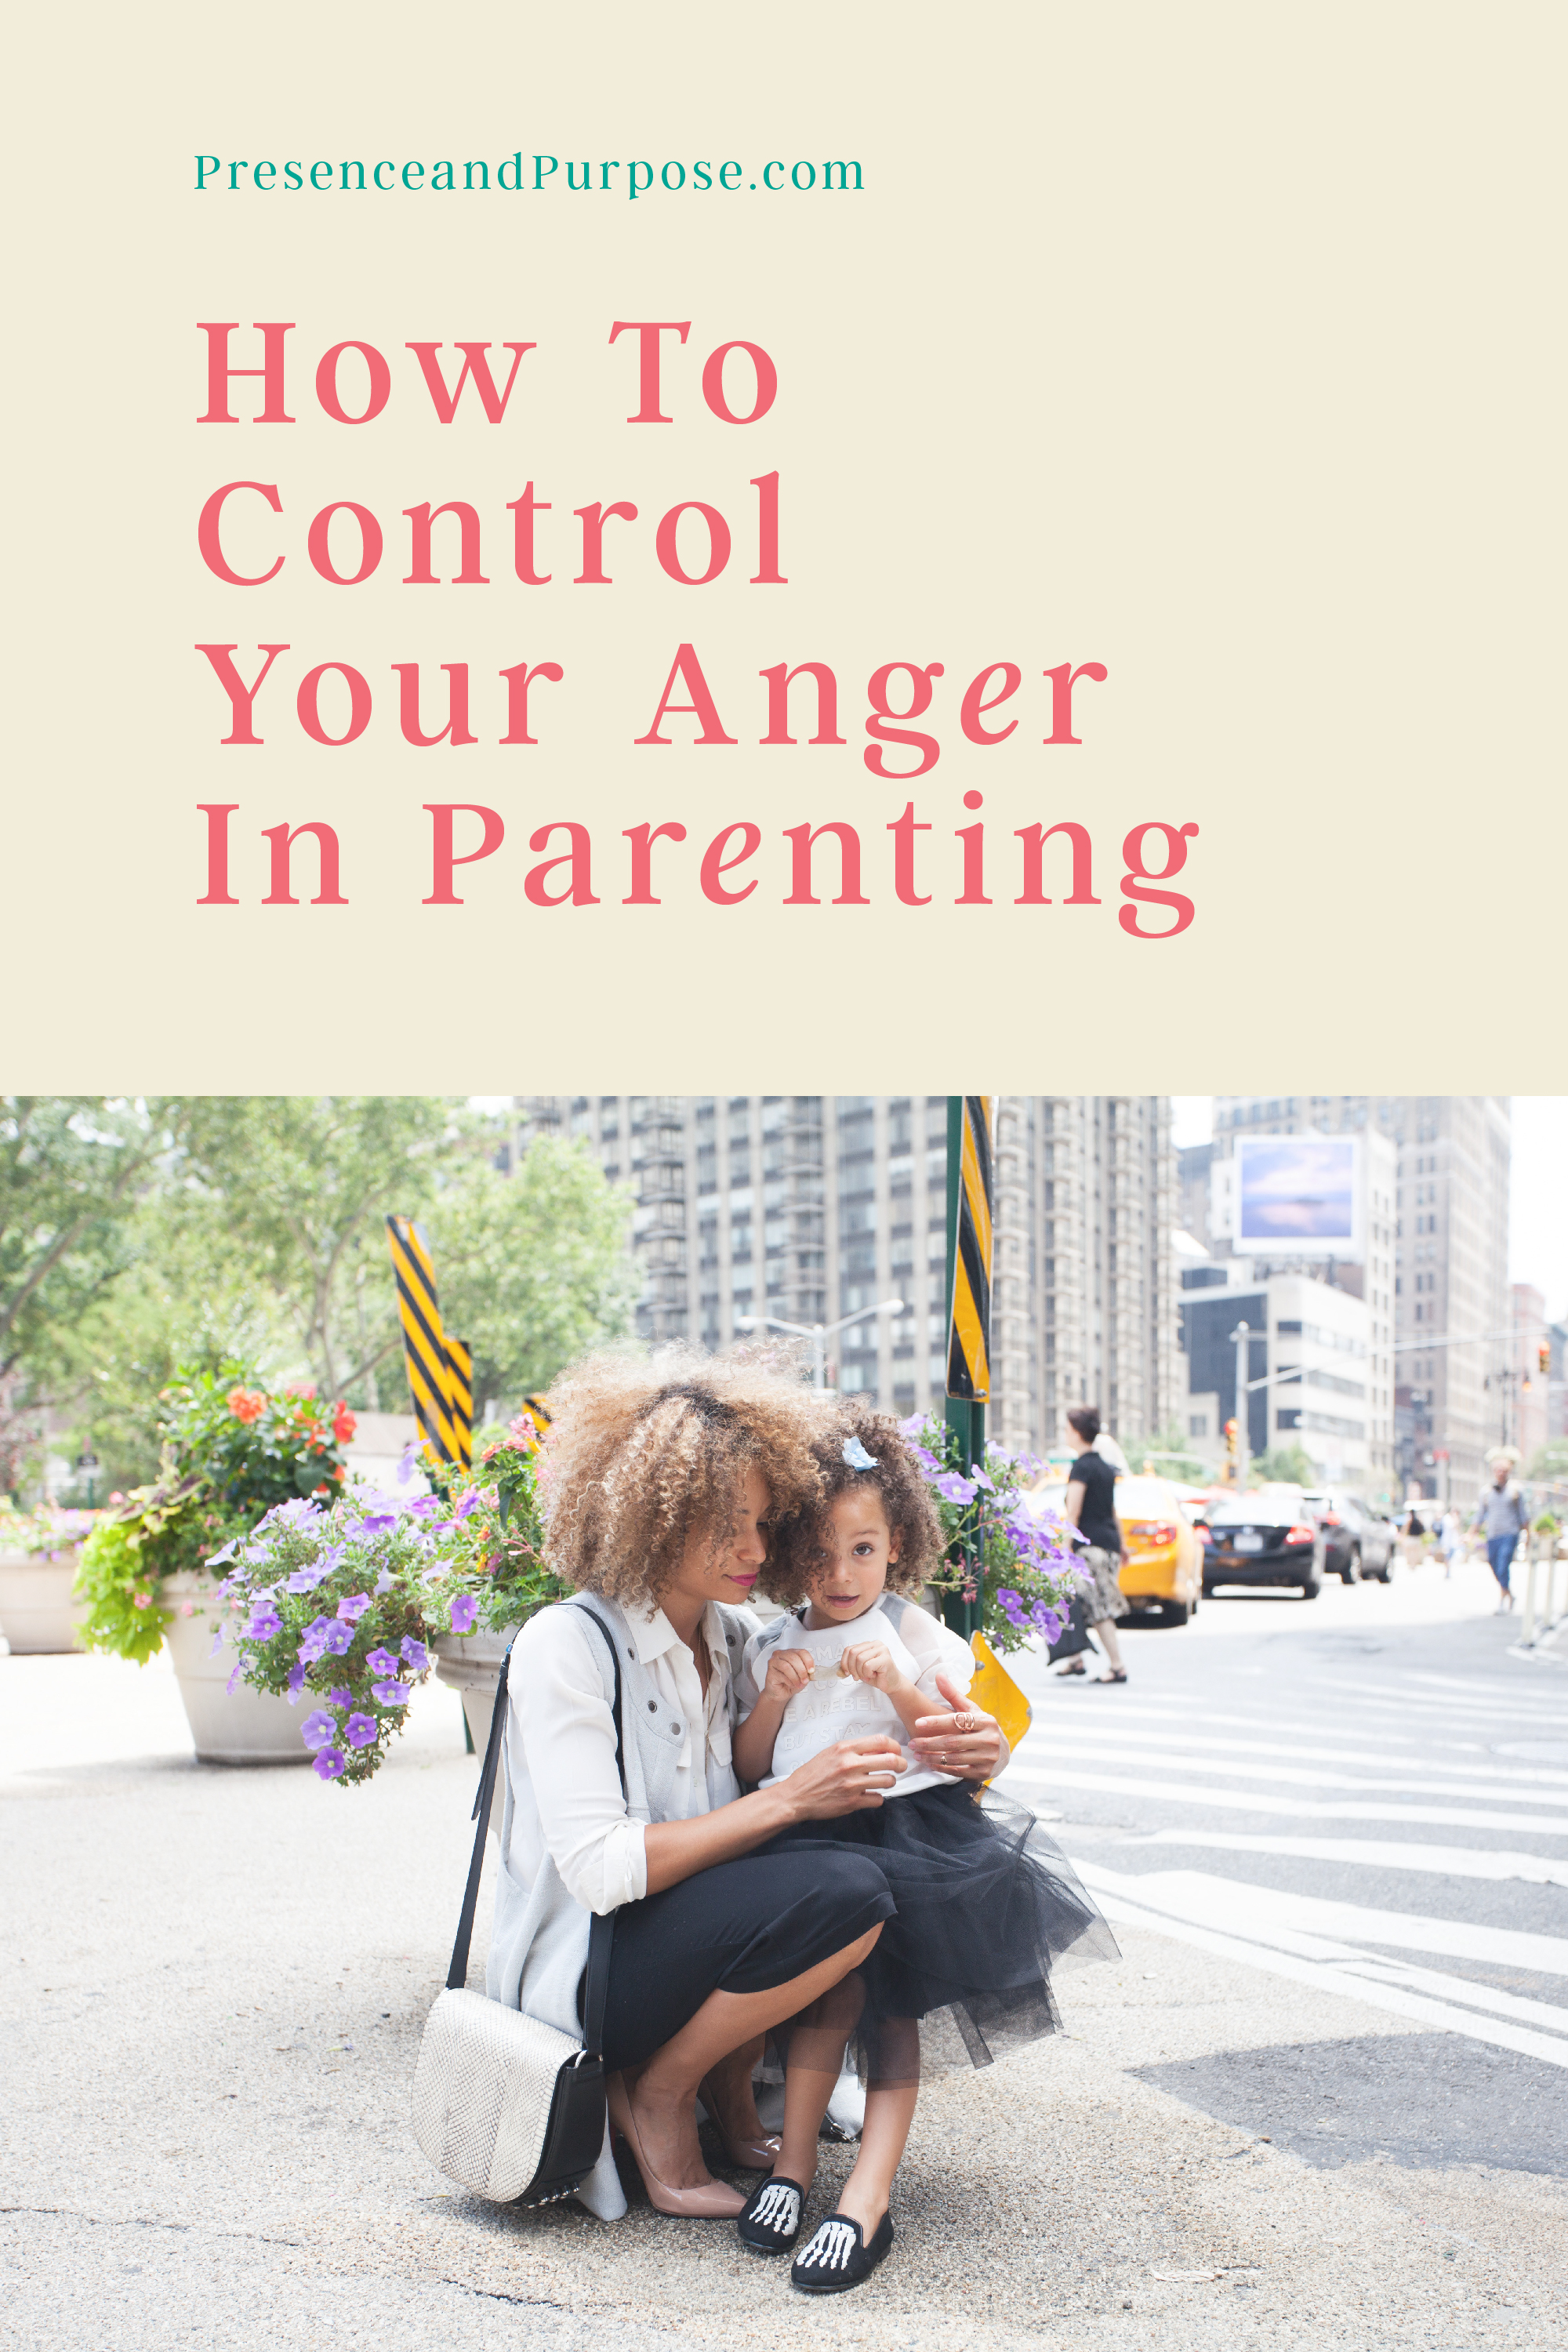 19_0318_How to Control Your Anger In Parenting.jpg